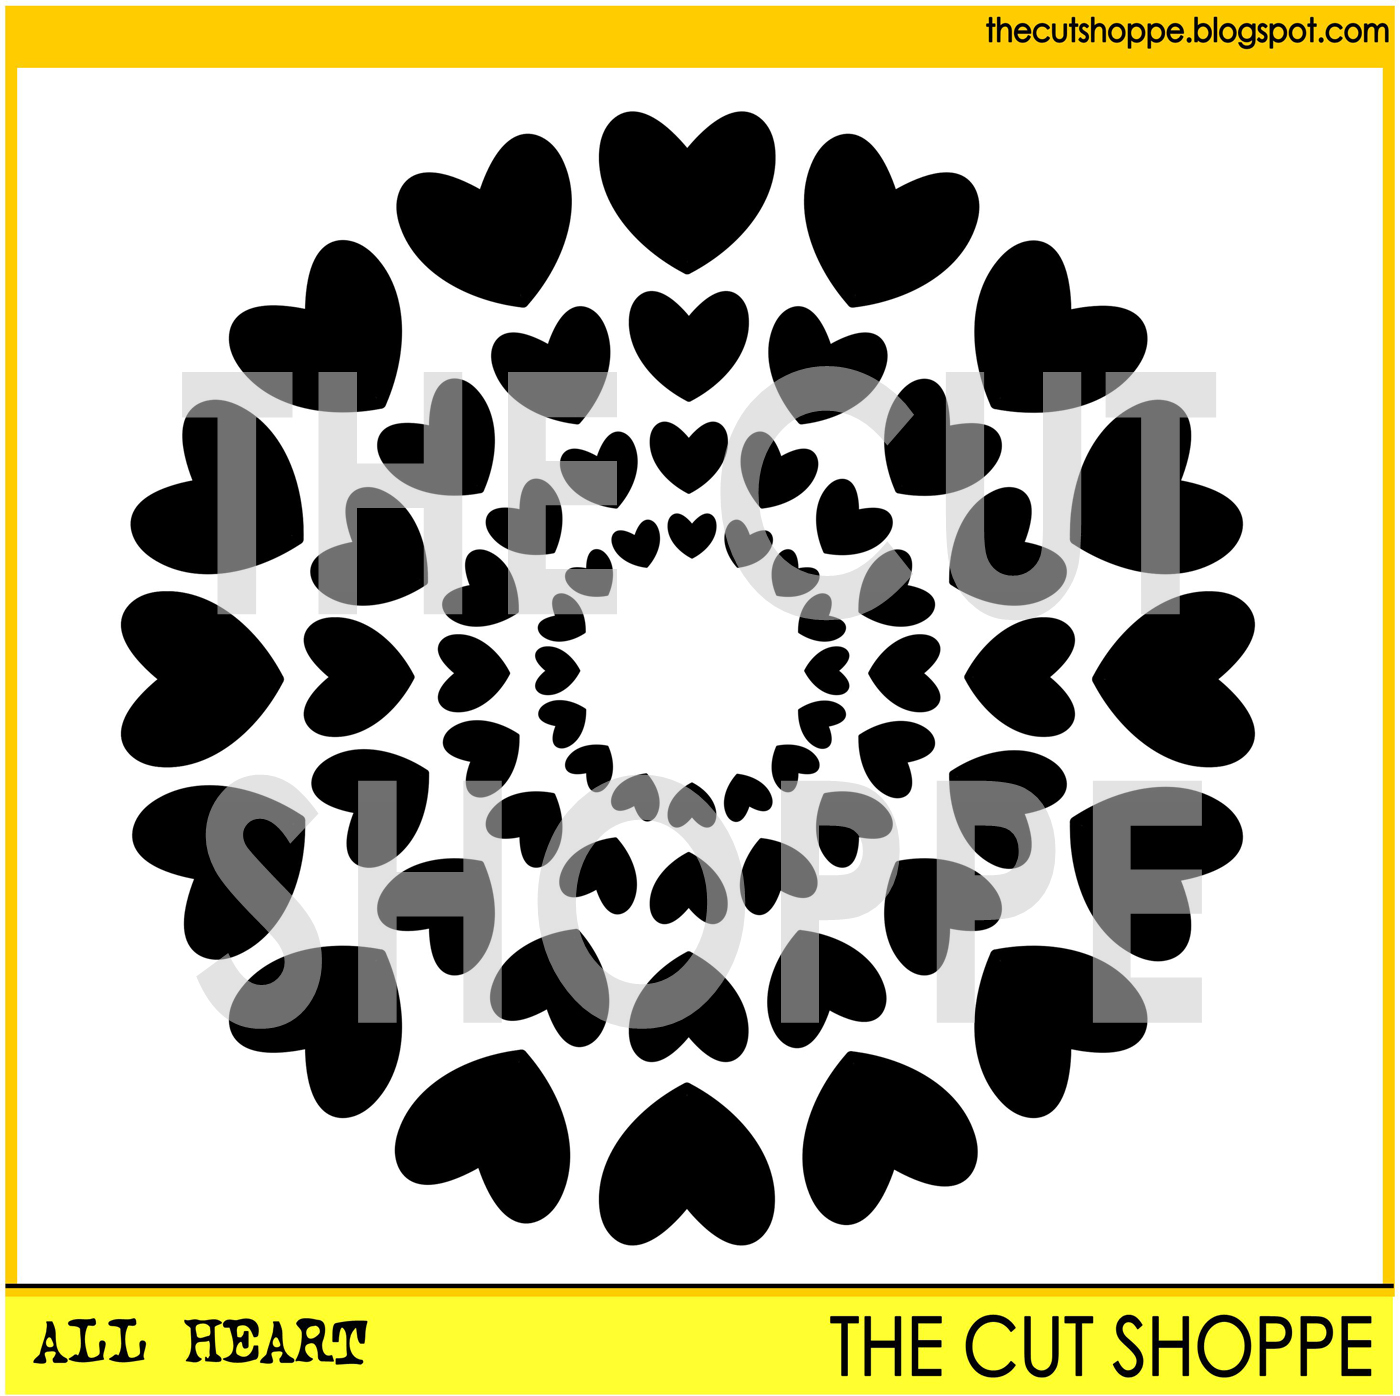 https://www.etsy.com/listing/222789081/the-all-heart-cut-file-is-a-background?ref=shop_home_feat_4